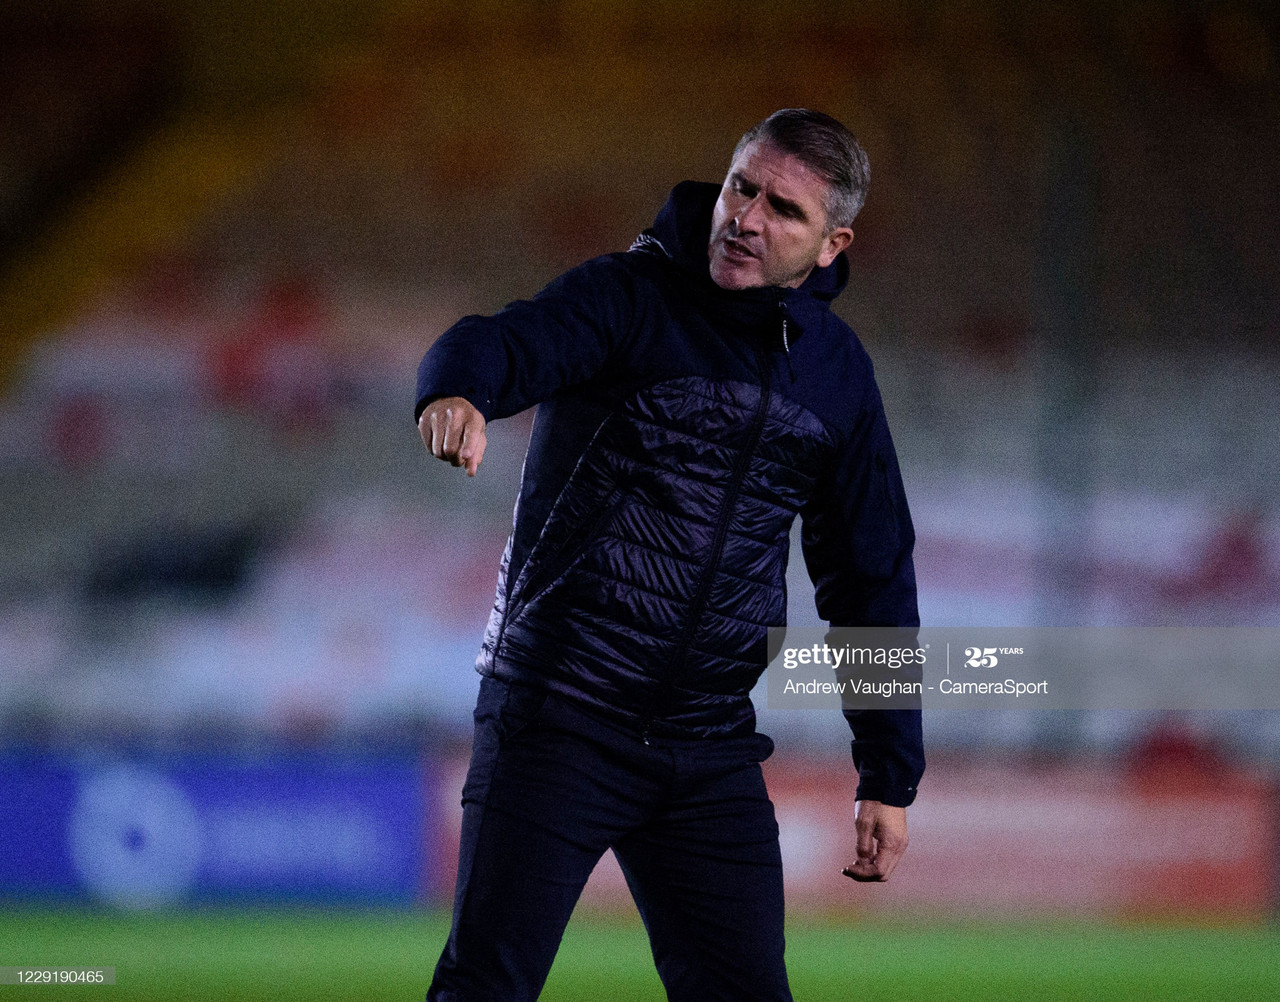 Argyle manager Ryan Lowe giving orders to his side / Photo by Andrew Vaughan - CameraSport via Getty Images